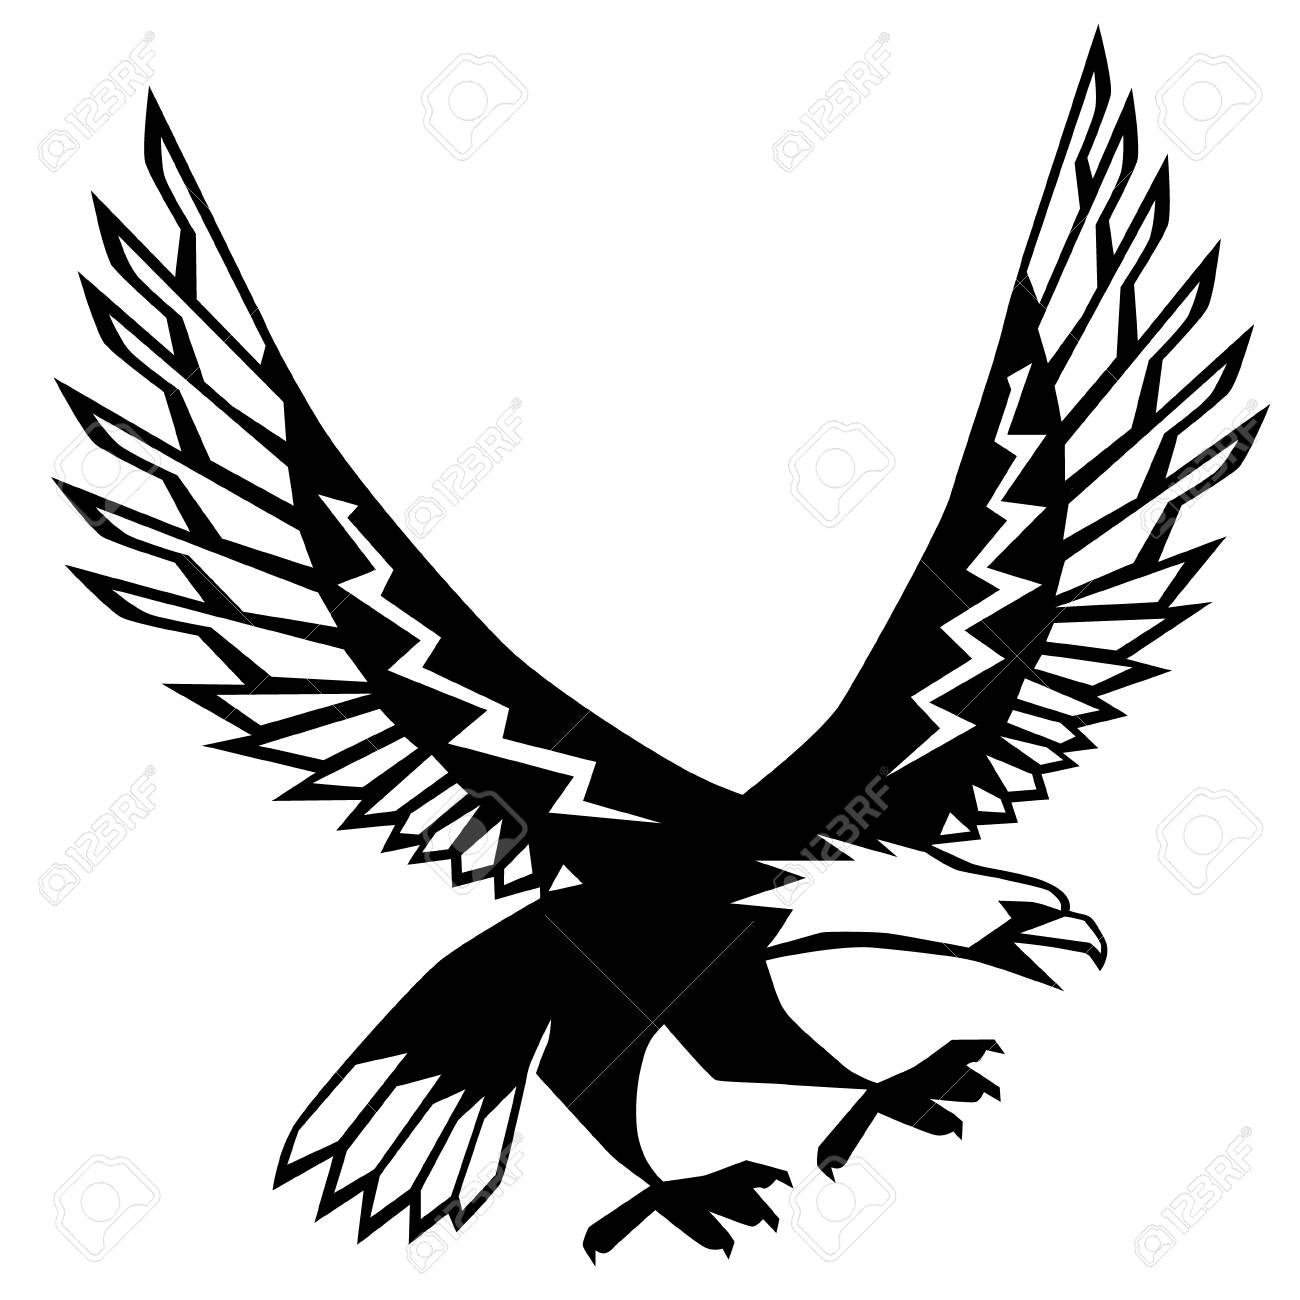 Flying eagle flat illustration on white